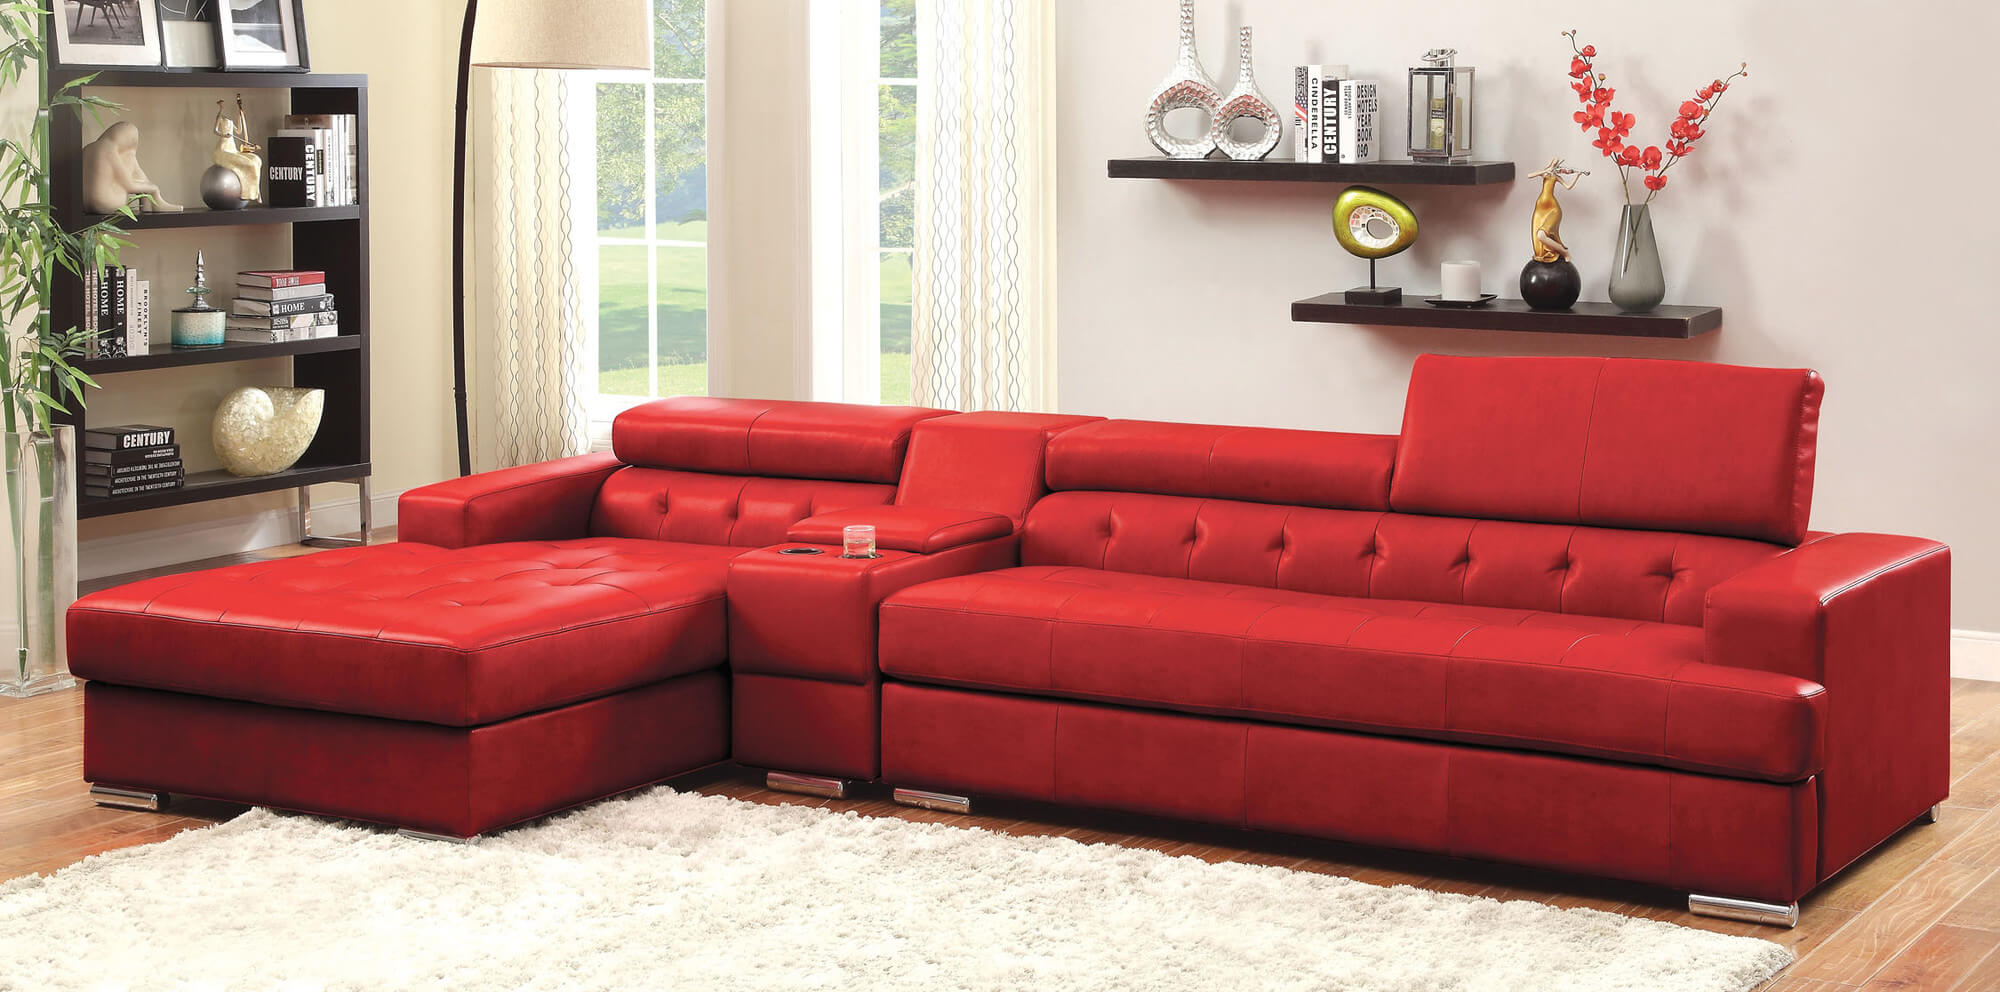 This chaise modern sectional is much like the Hokku above except it includes a console separating the chaise section from the main sofa arm. Like the one above, it includes an adjustable head rest.